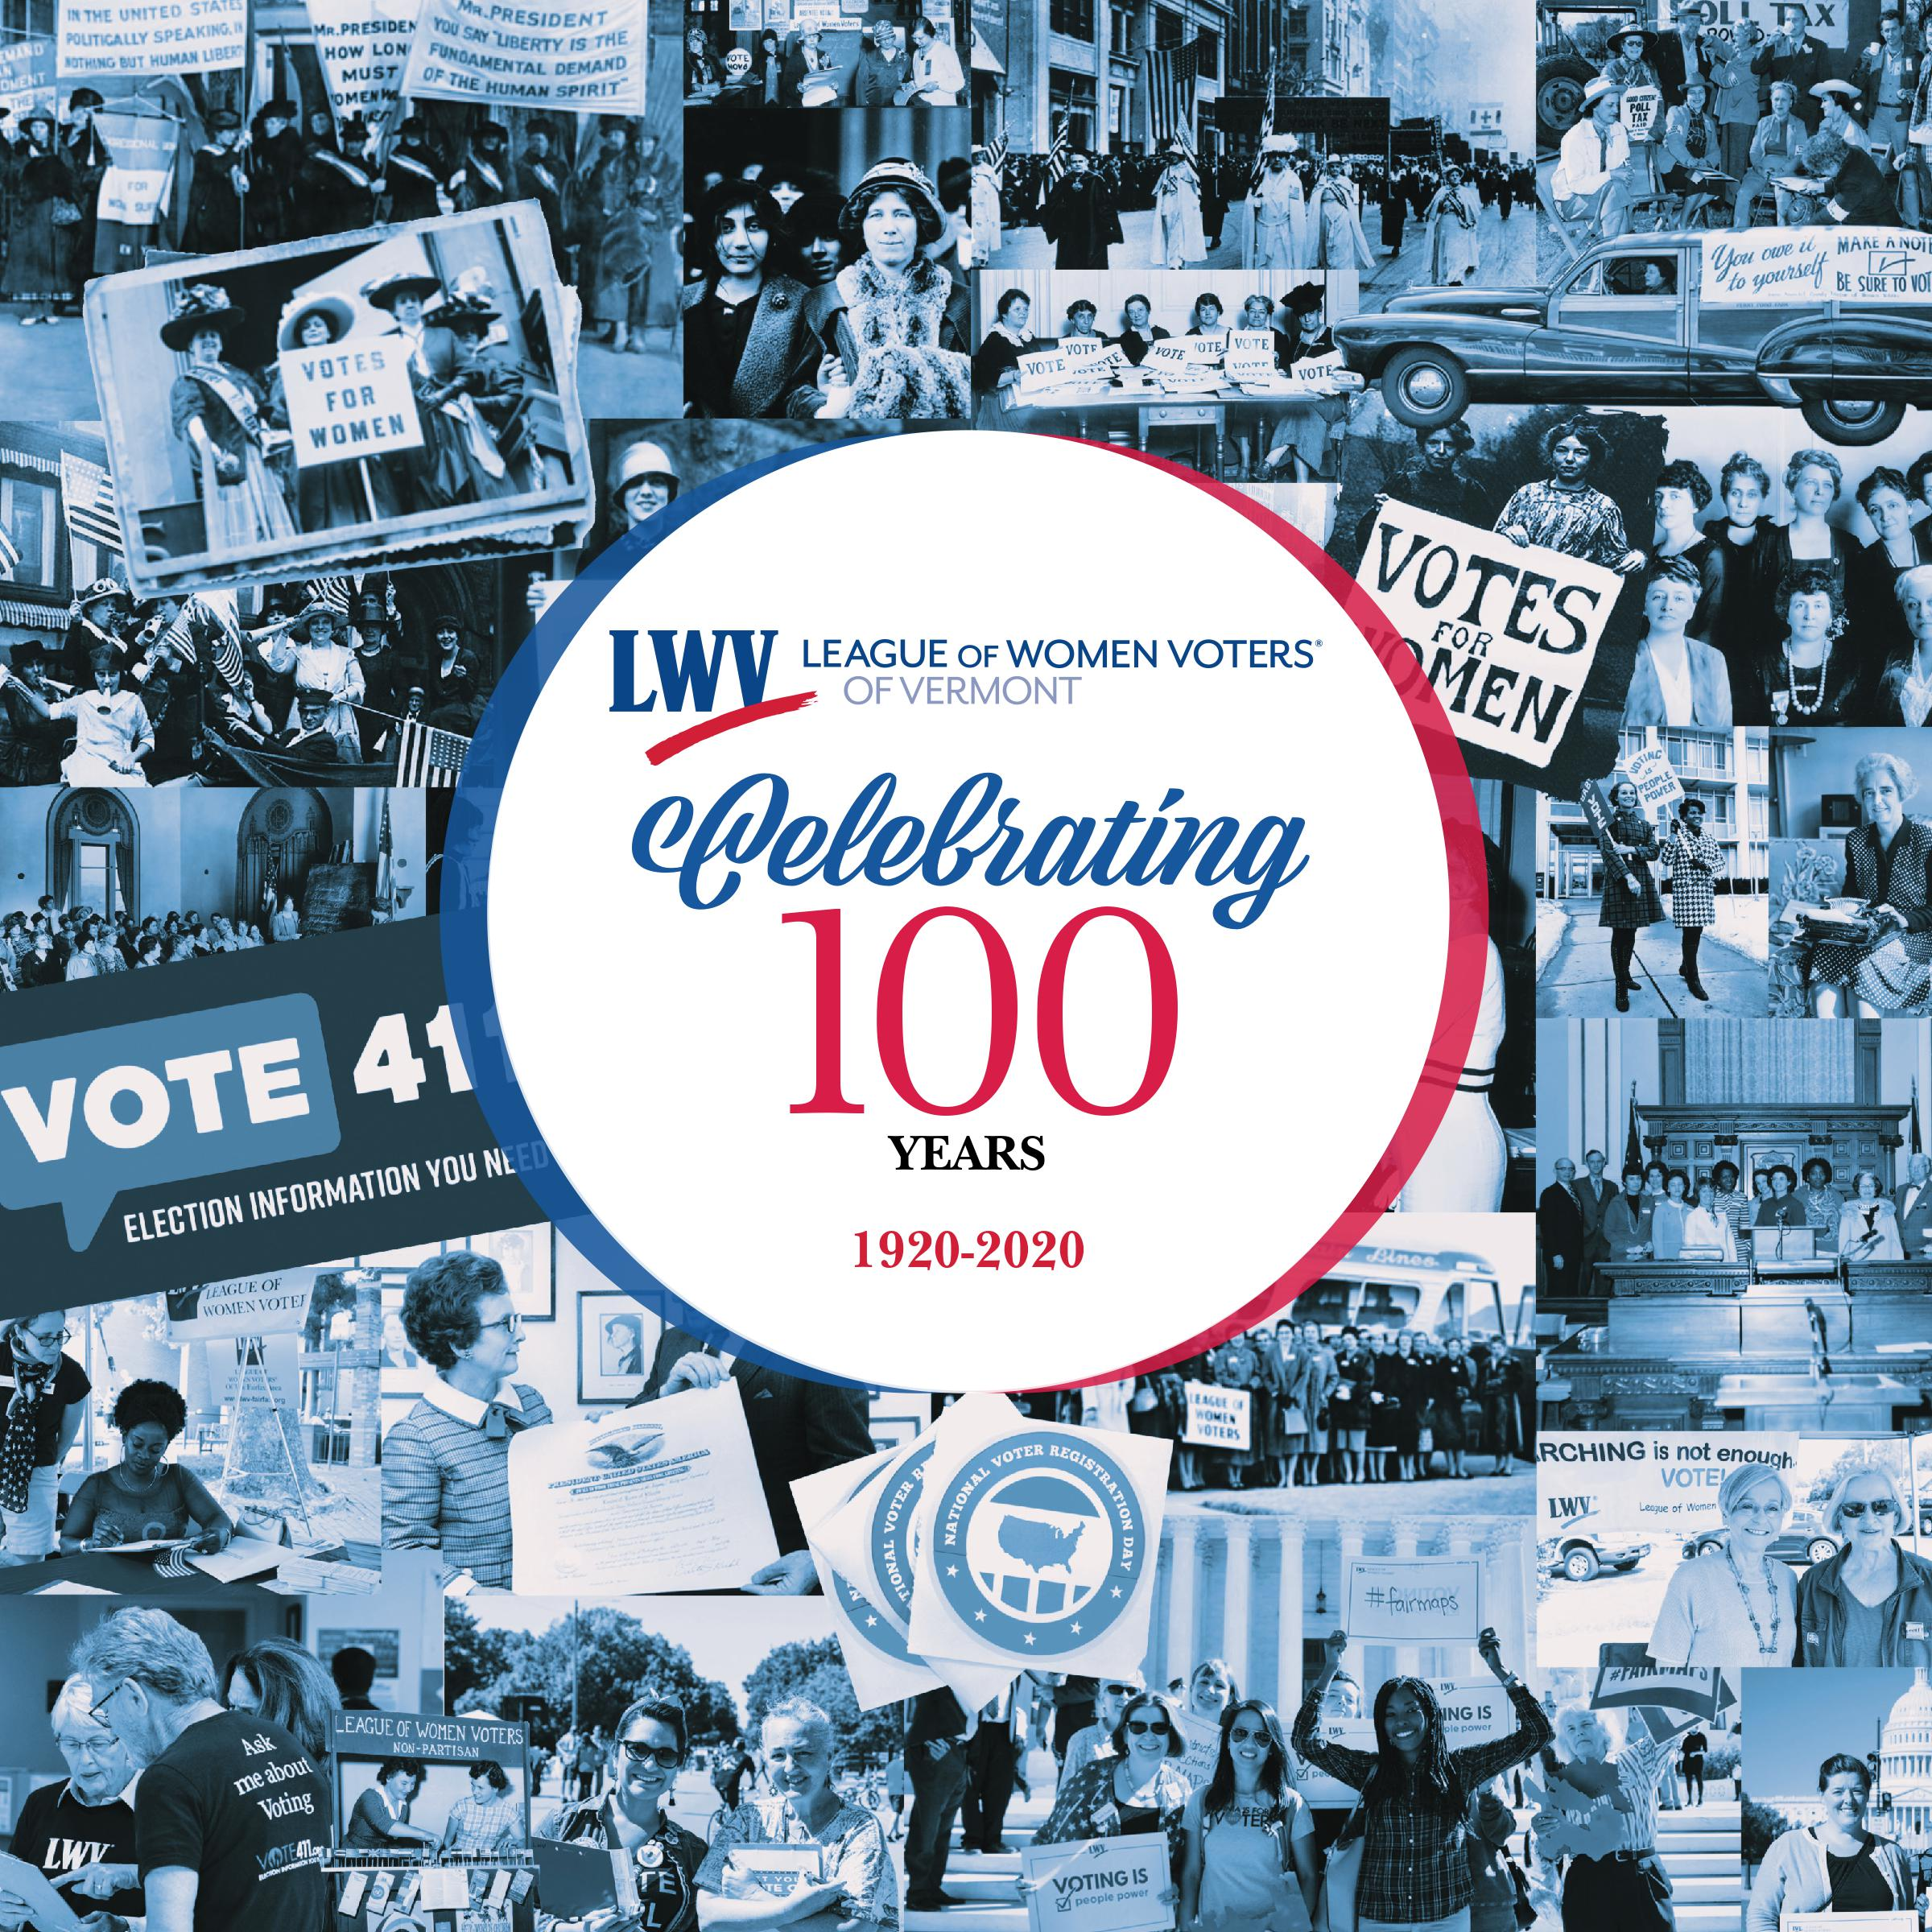 League of Women Voters of Vermont Celebrating 100 Years